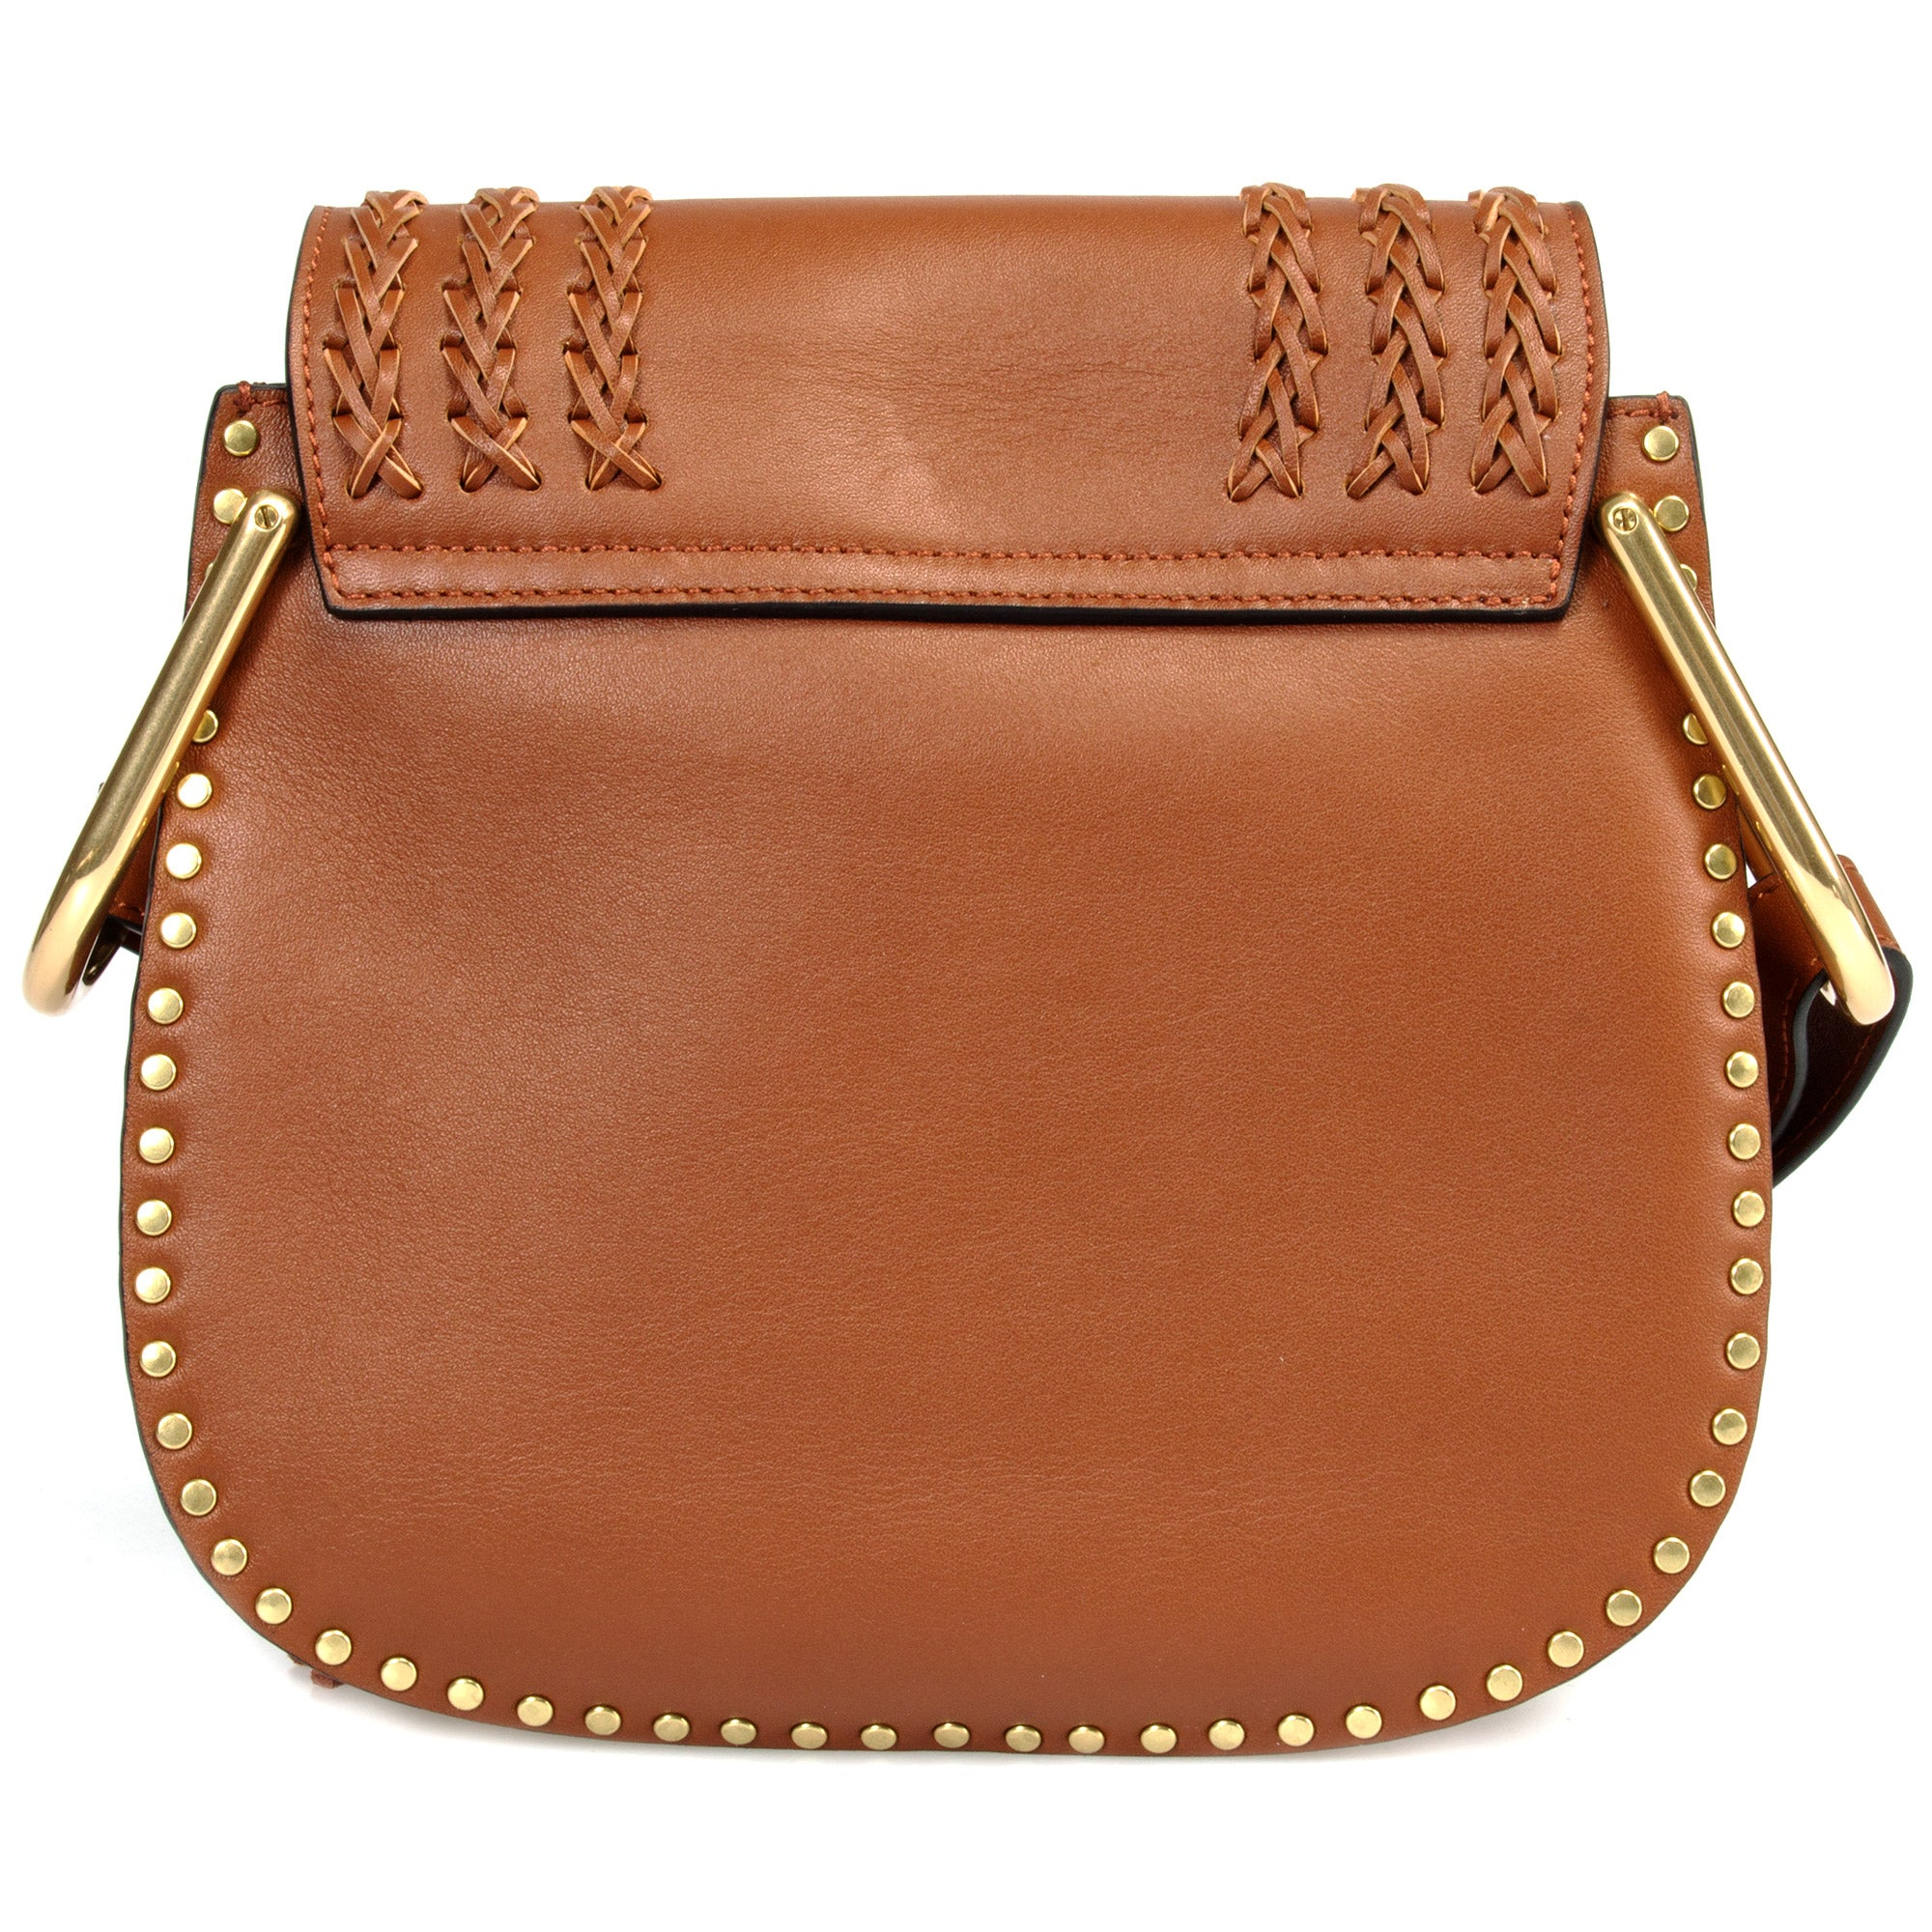 Chléoe Hudson Calfskin Shoulder Bag | Caramel with Gold Hardware